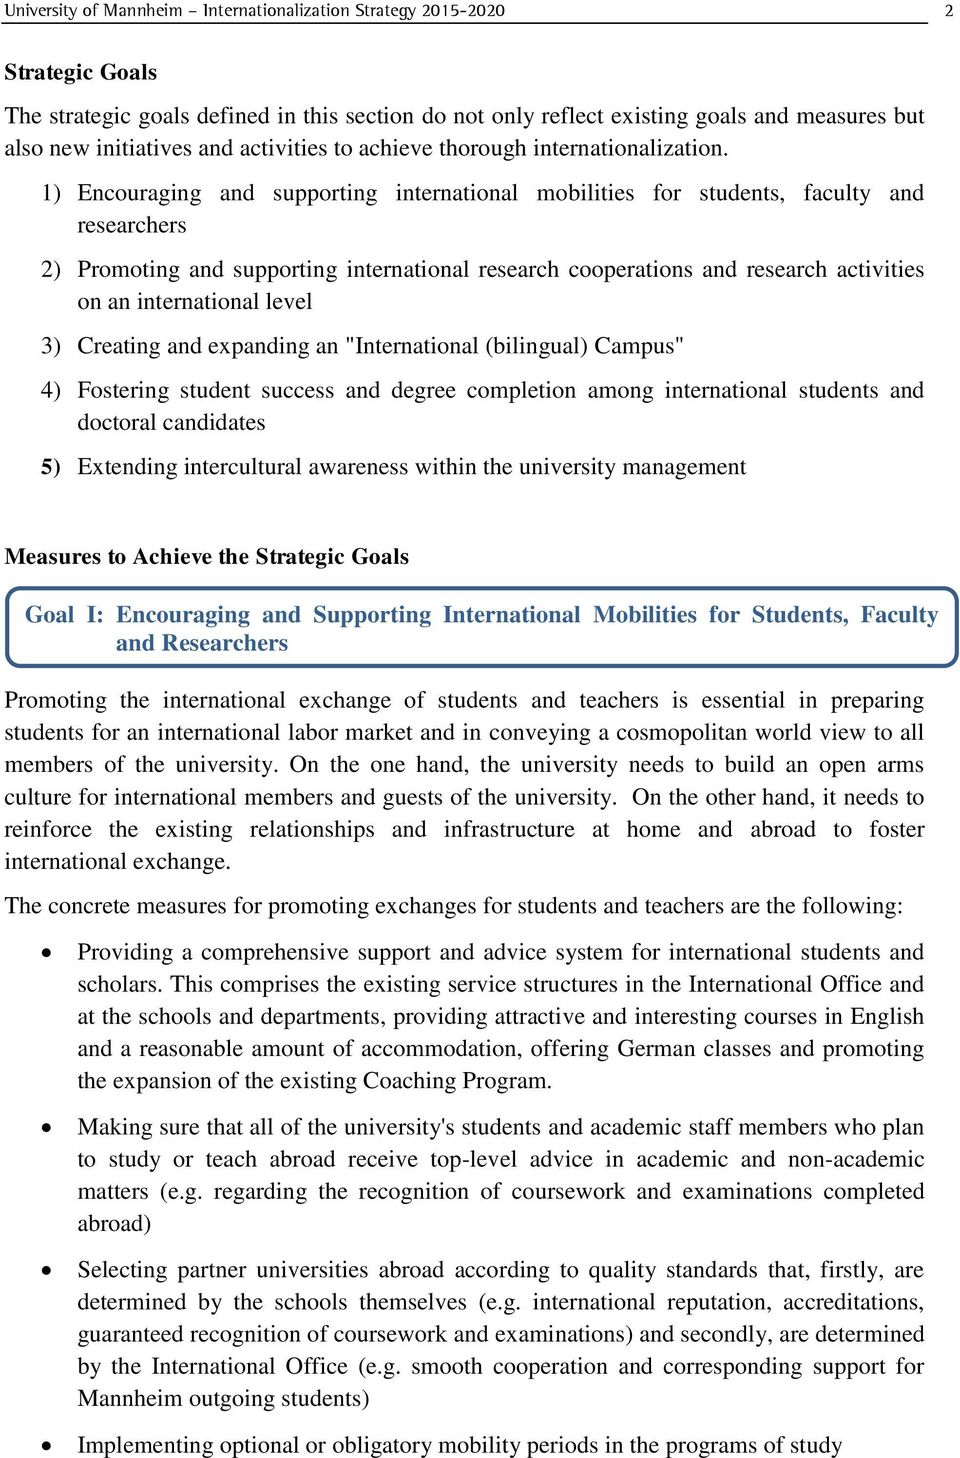 1) Encouraging and supporting international mobilities for students, faculty and researchers 2) Promoting and supporting international research cooperations and research activities on an